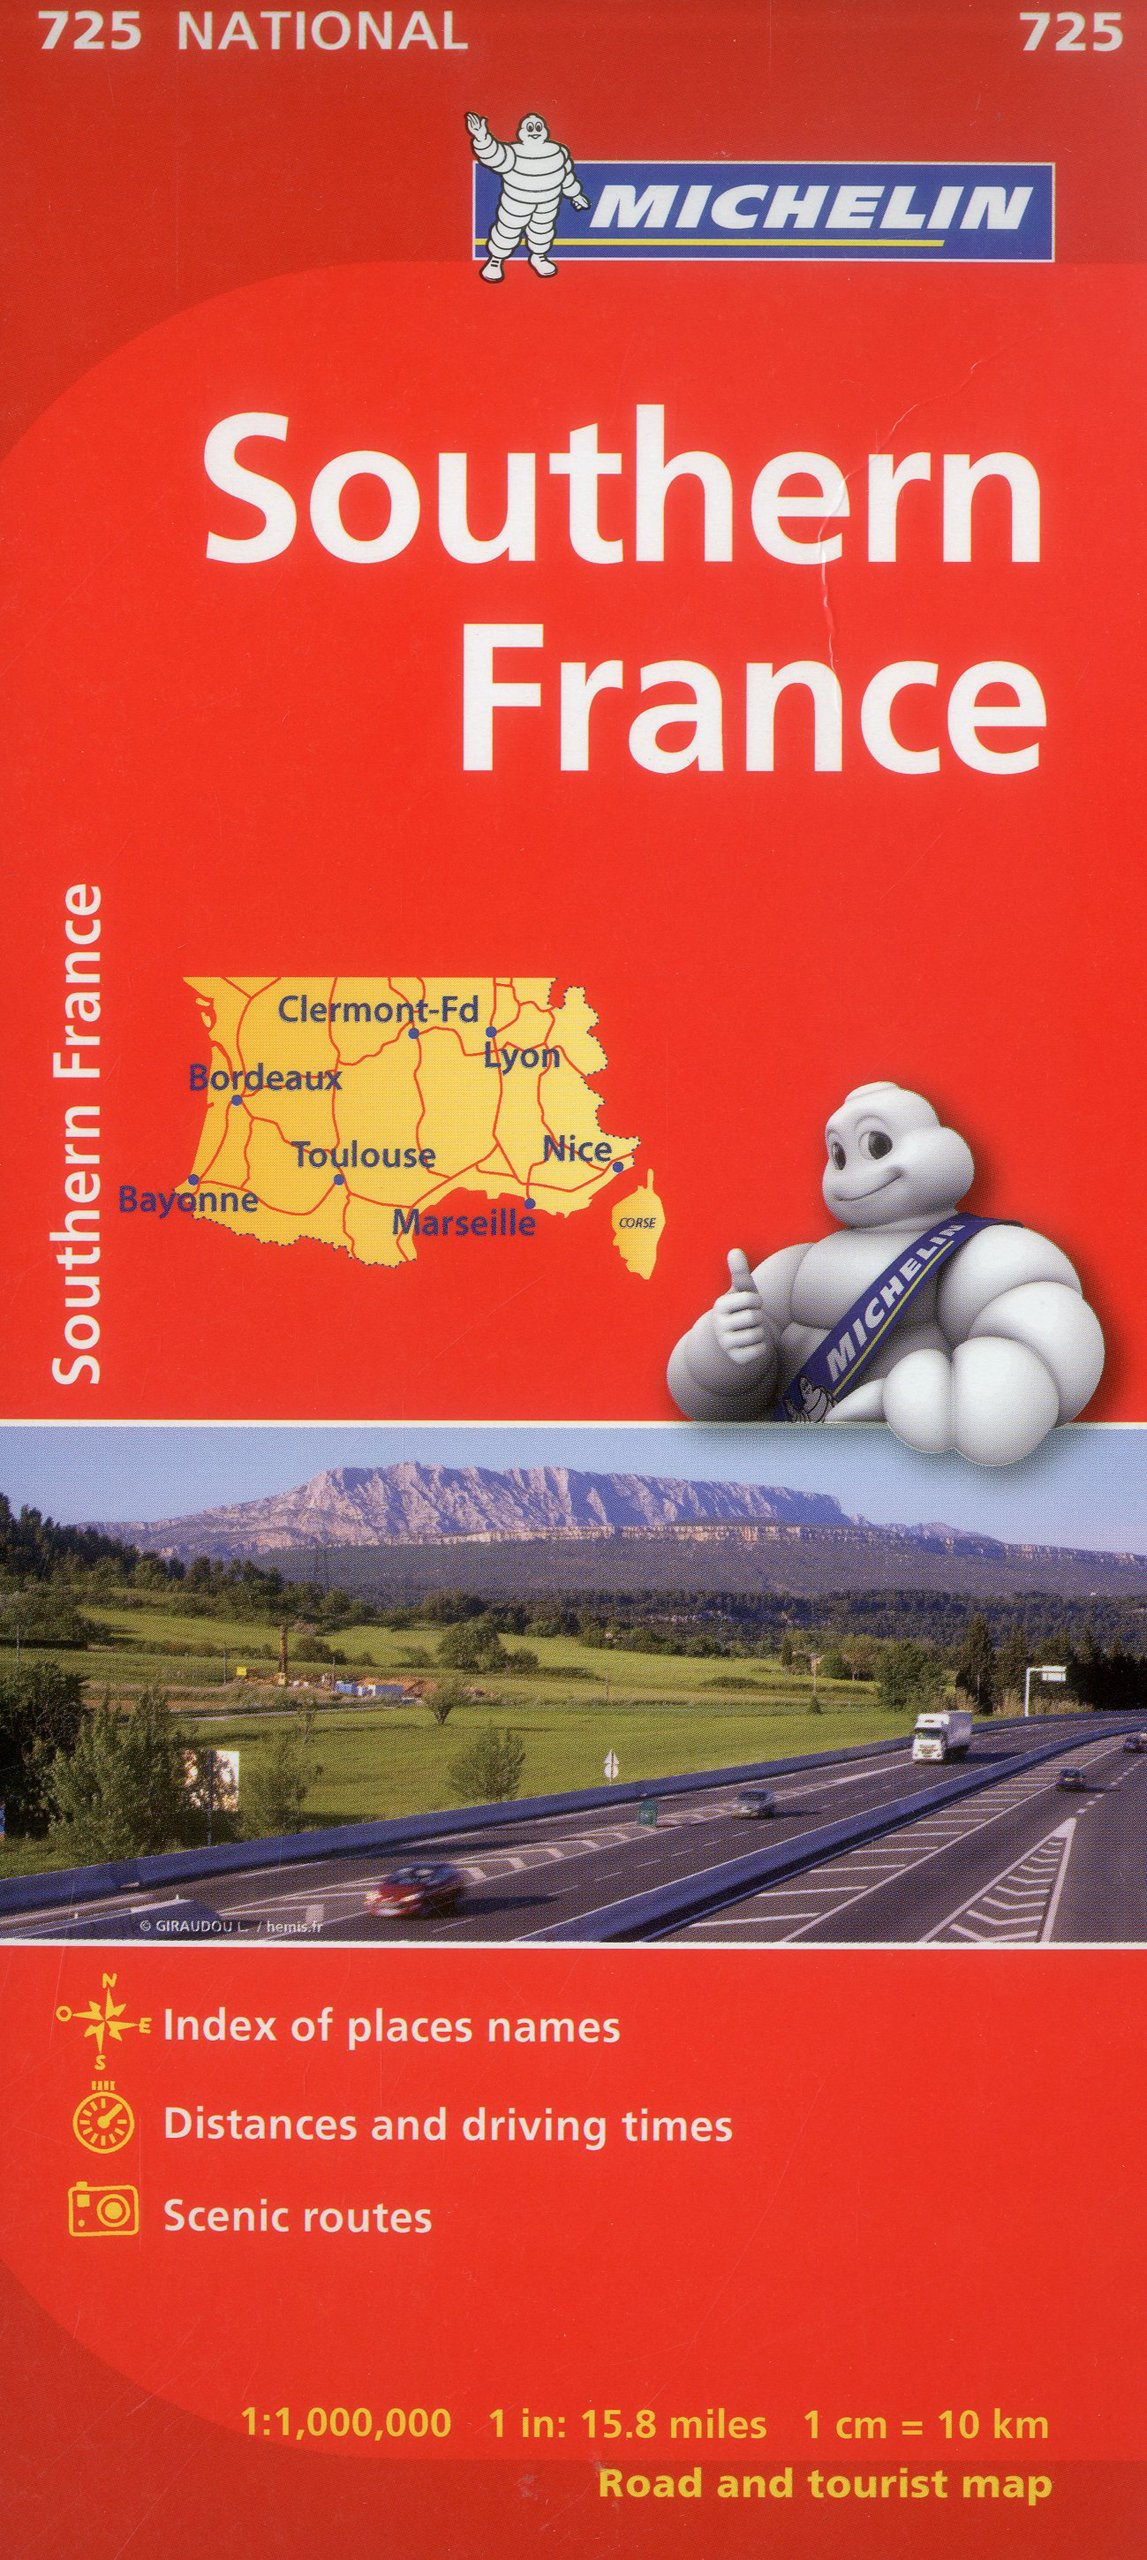 South Of France Map Detailed.Michelin France South Map 725 Maps Country Michelin Michelin